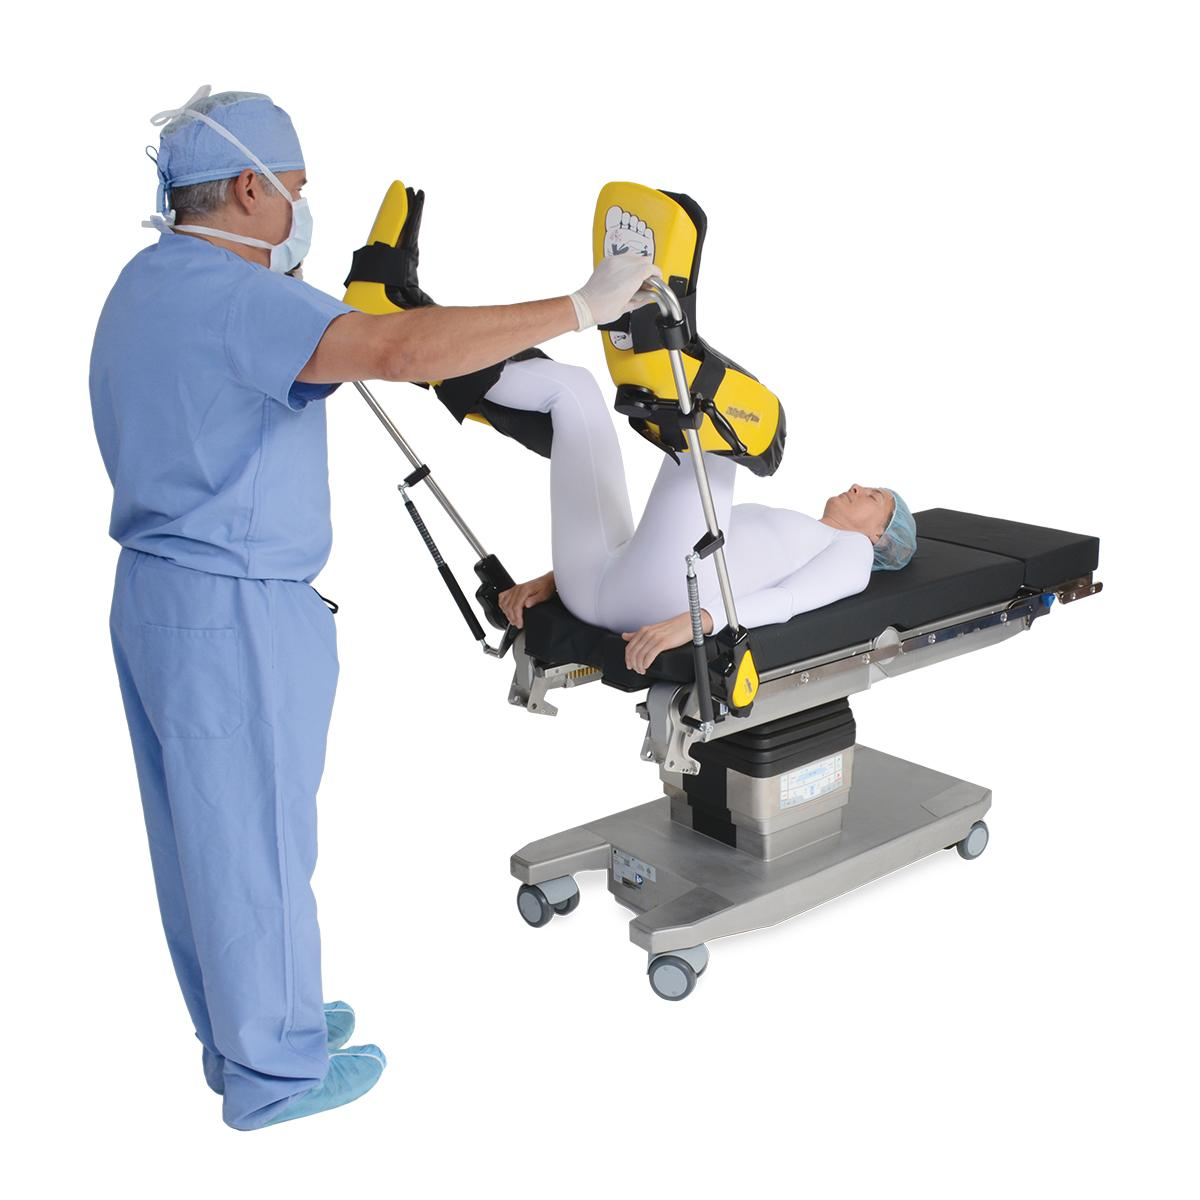 Yellofins Stirrups with lift-assist, with clinician and patient in lithotomy, #O-YFASI